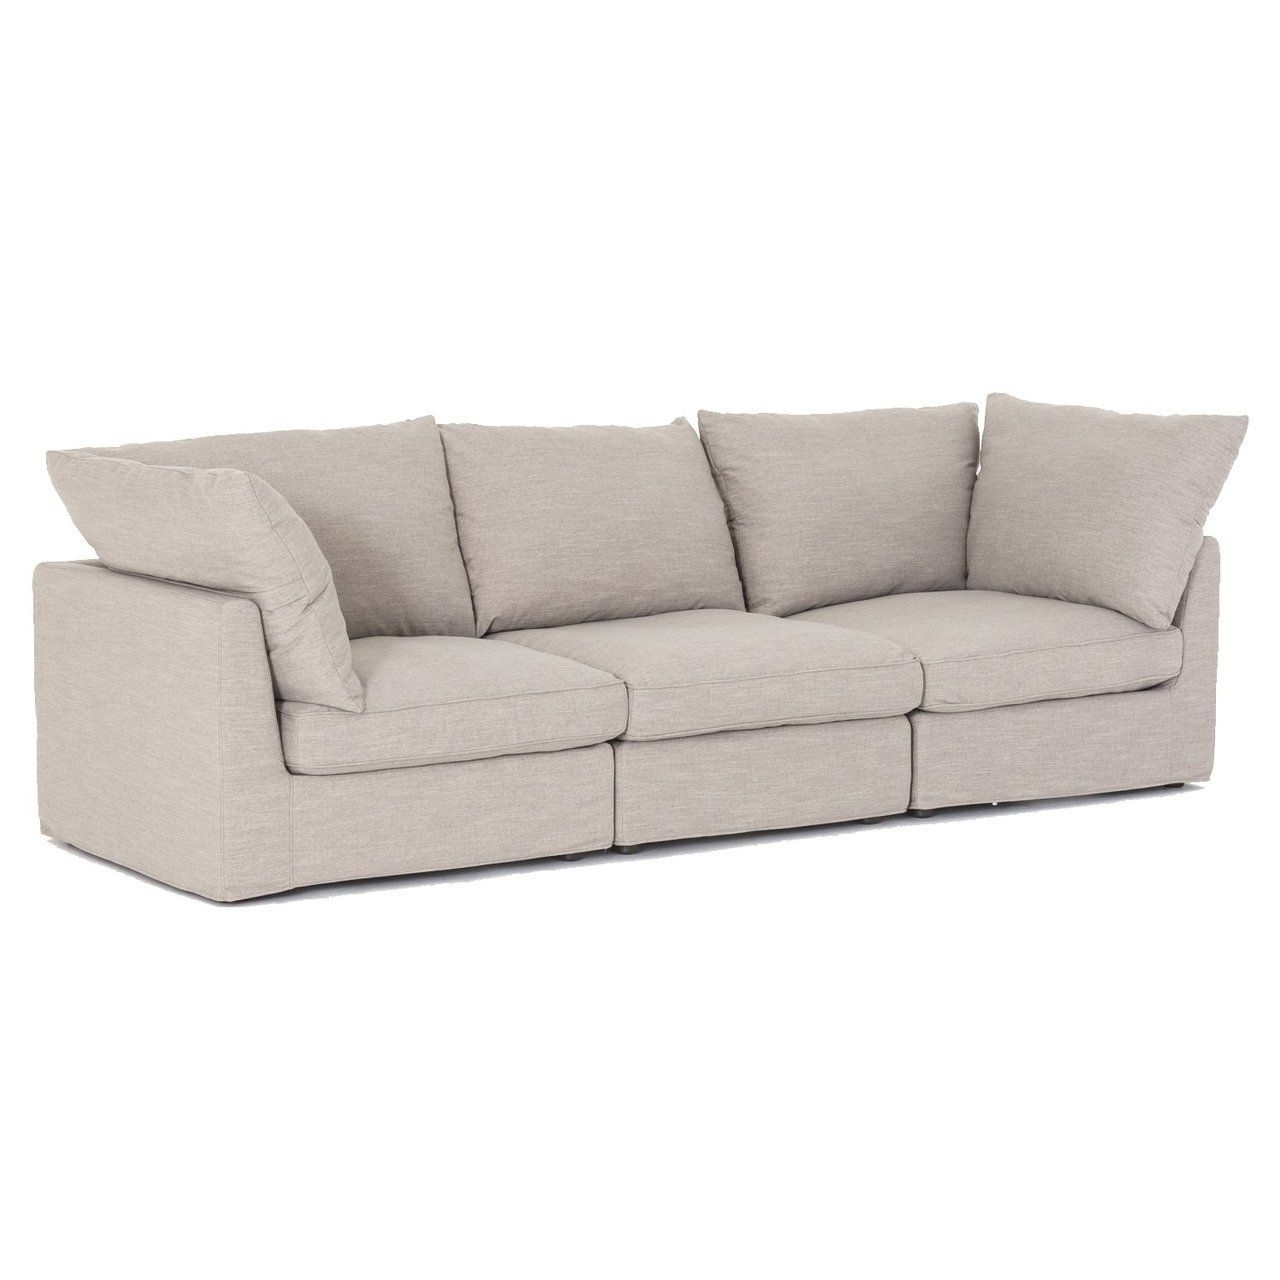 Harper Foam 3 Piece Sectional W/raf Chaise for Harper Foam 3 Piece Sectionals With Raf Chaise (Image 6 of 30)